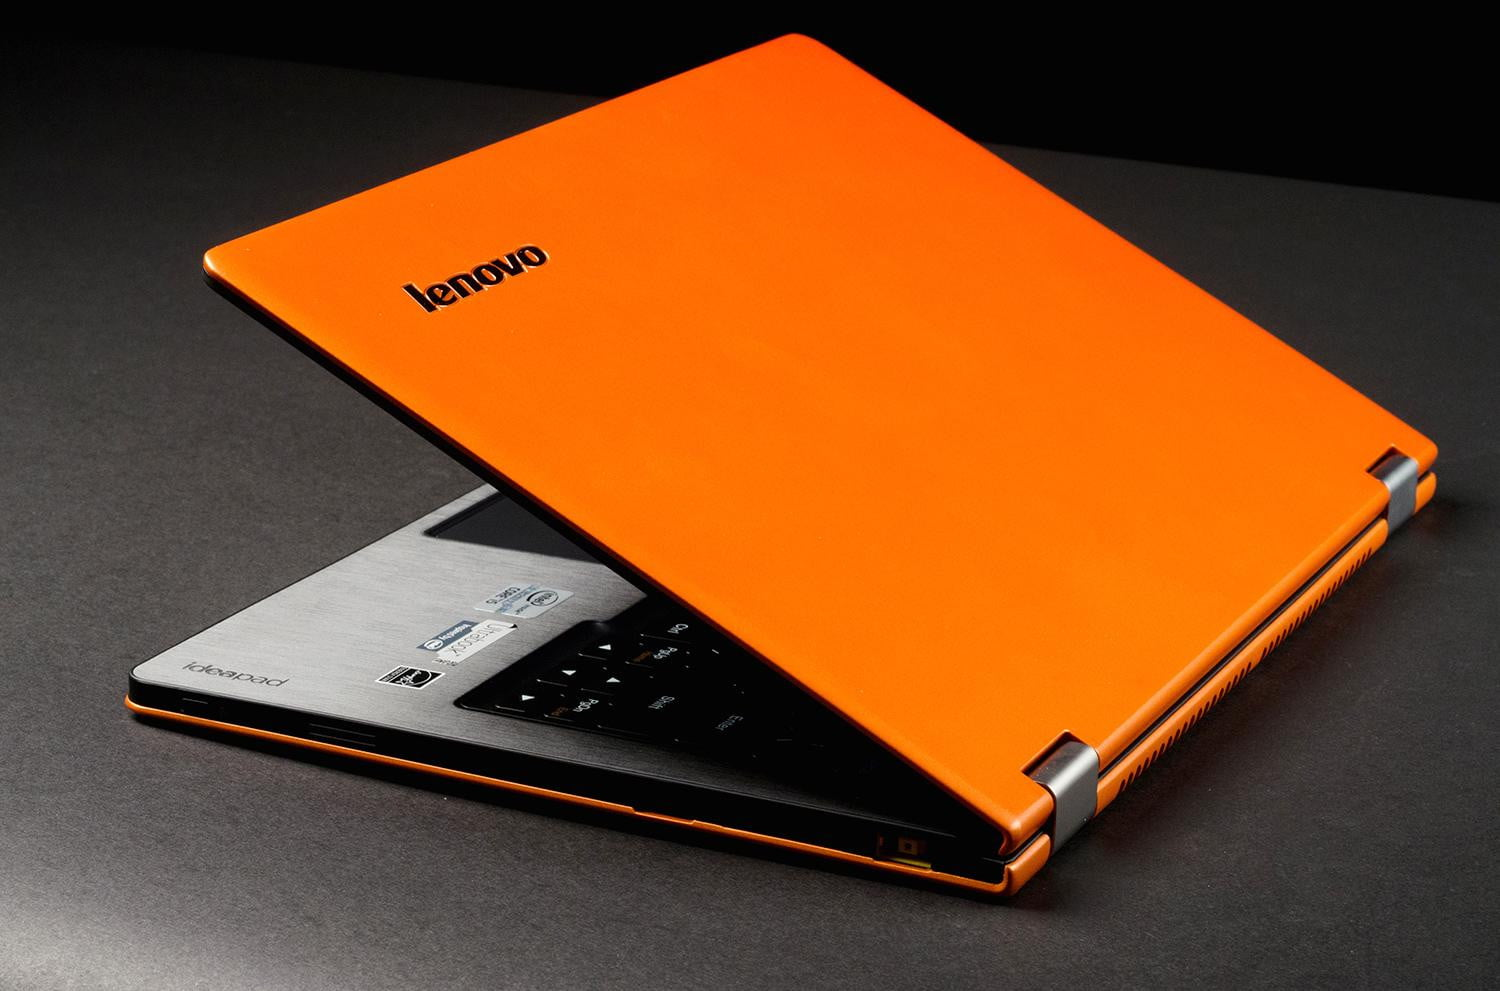 lenovo ideapad yoga 11s review digital trends. Black Bedroom Furniture Sets. Home Design Ideas